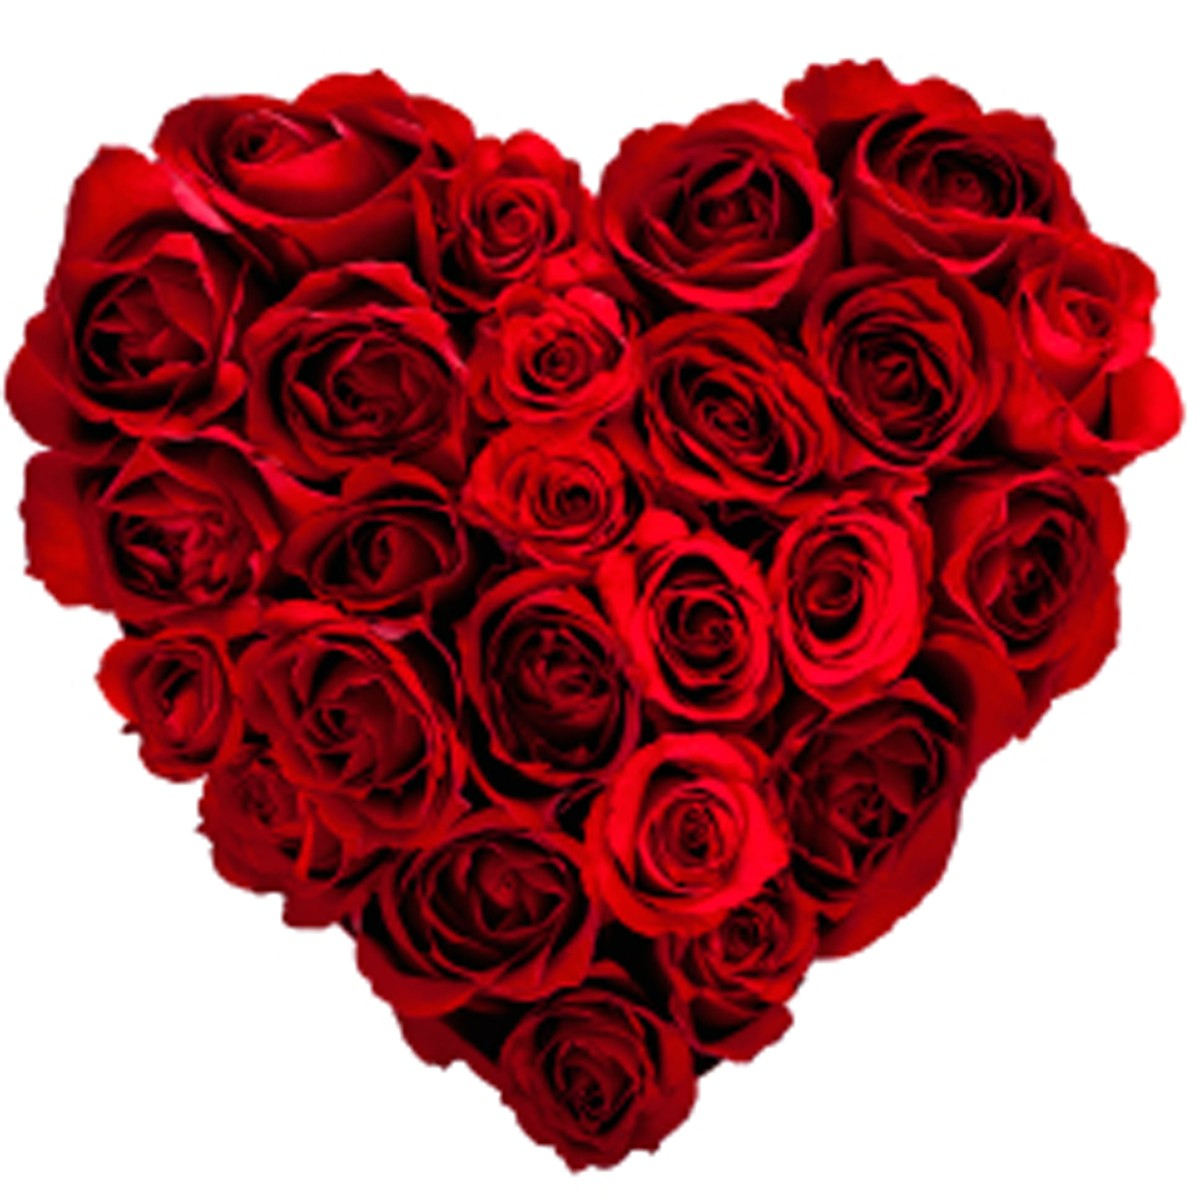 Where's best to go for Valentine's Day in Devizes? Don't getover-excited.